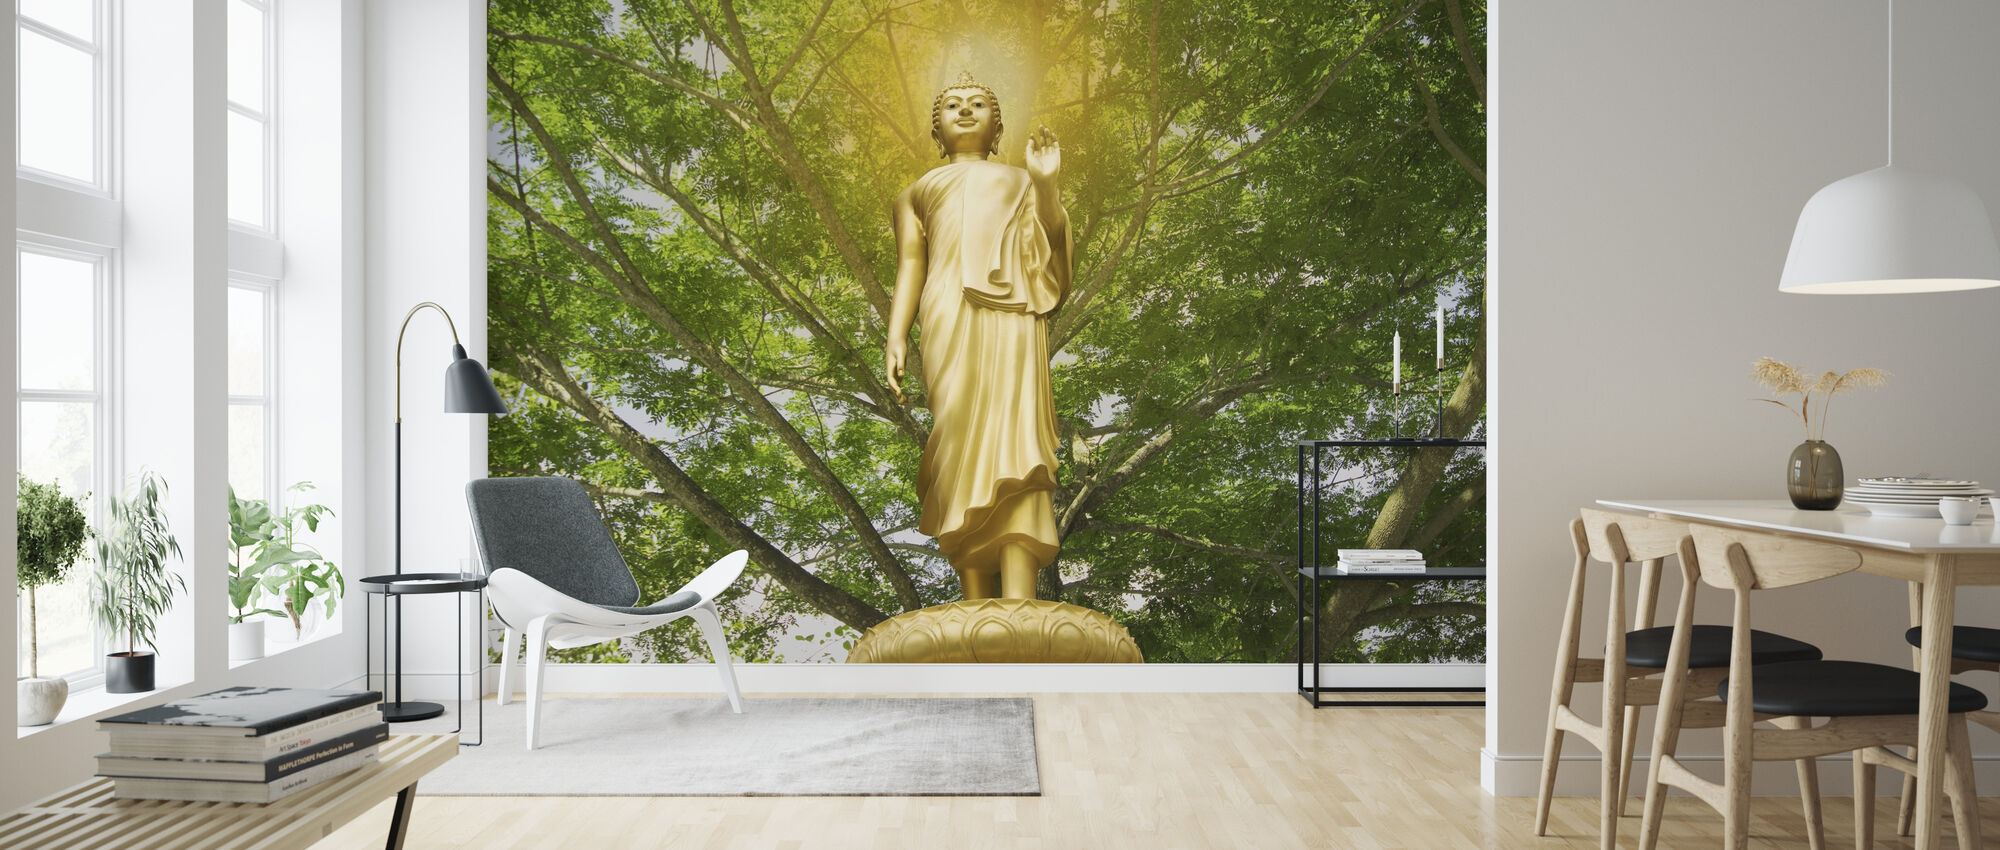 Statue of Buddha - Wallpaper - Living Room